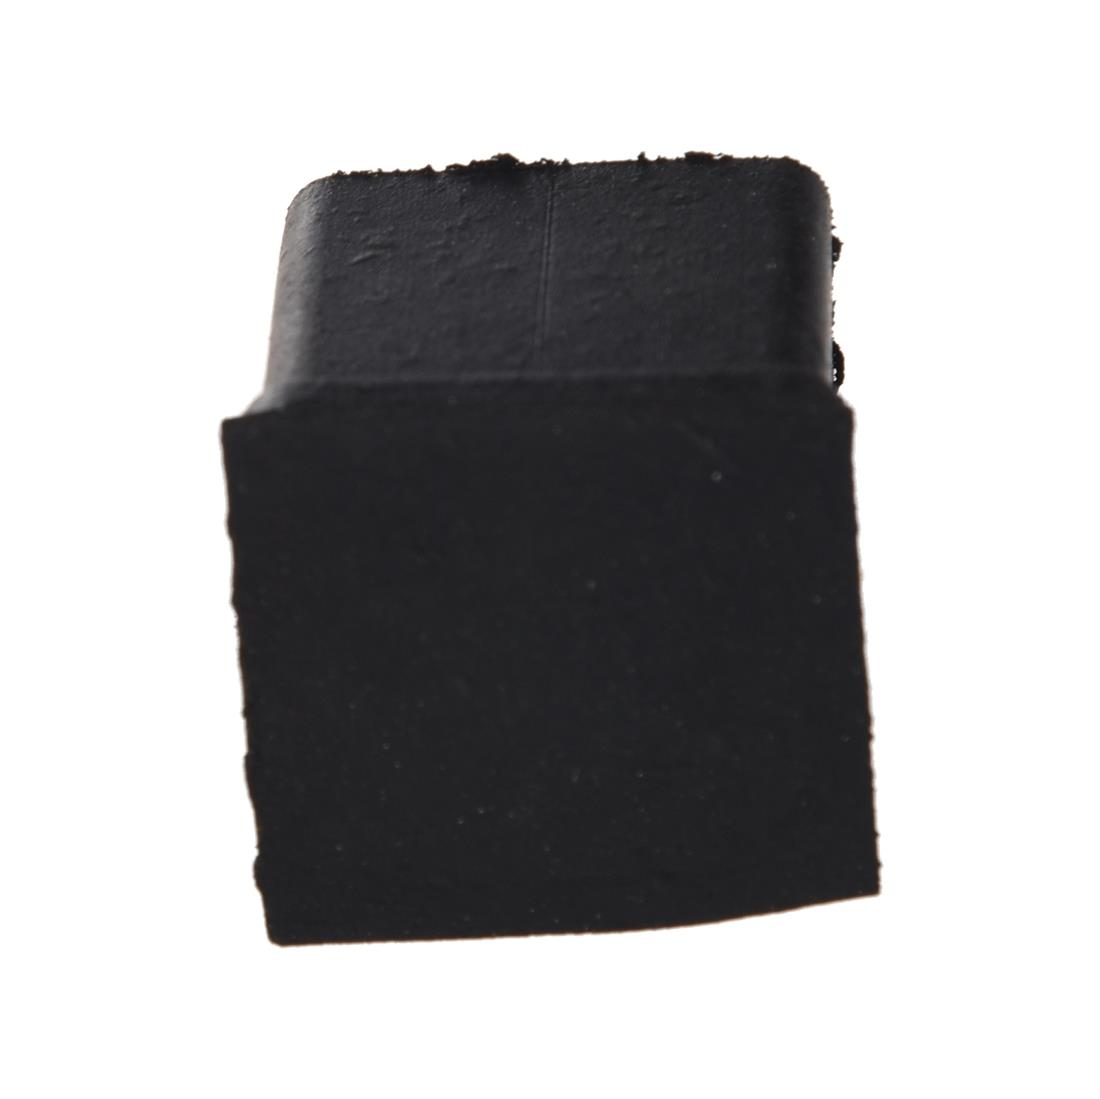 Promotion! Black 40 Pcs Rubber Chair Table Foot Cover Furniture Leg Protectors 20x20mm